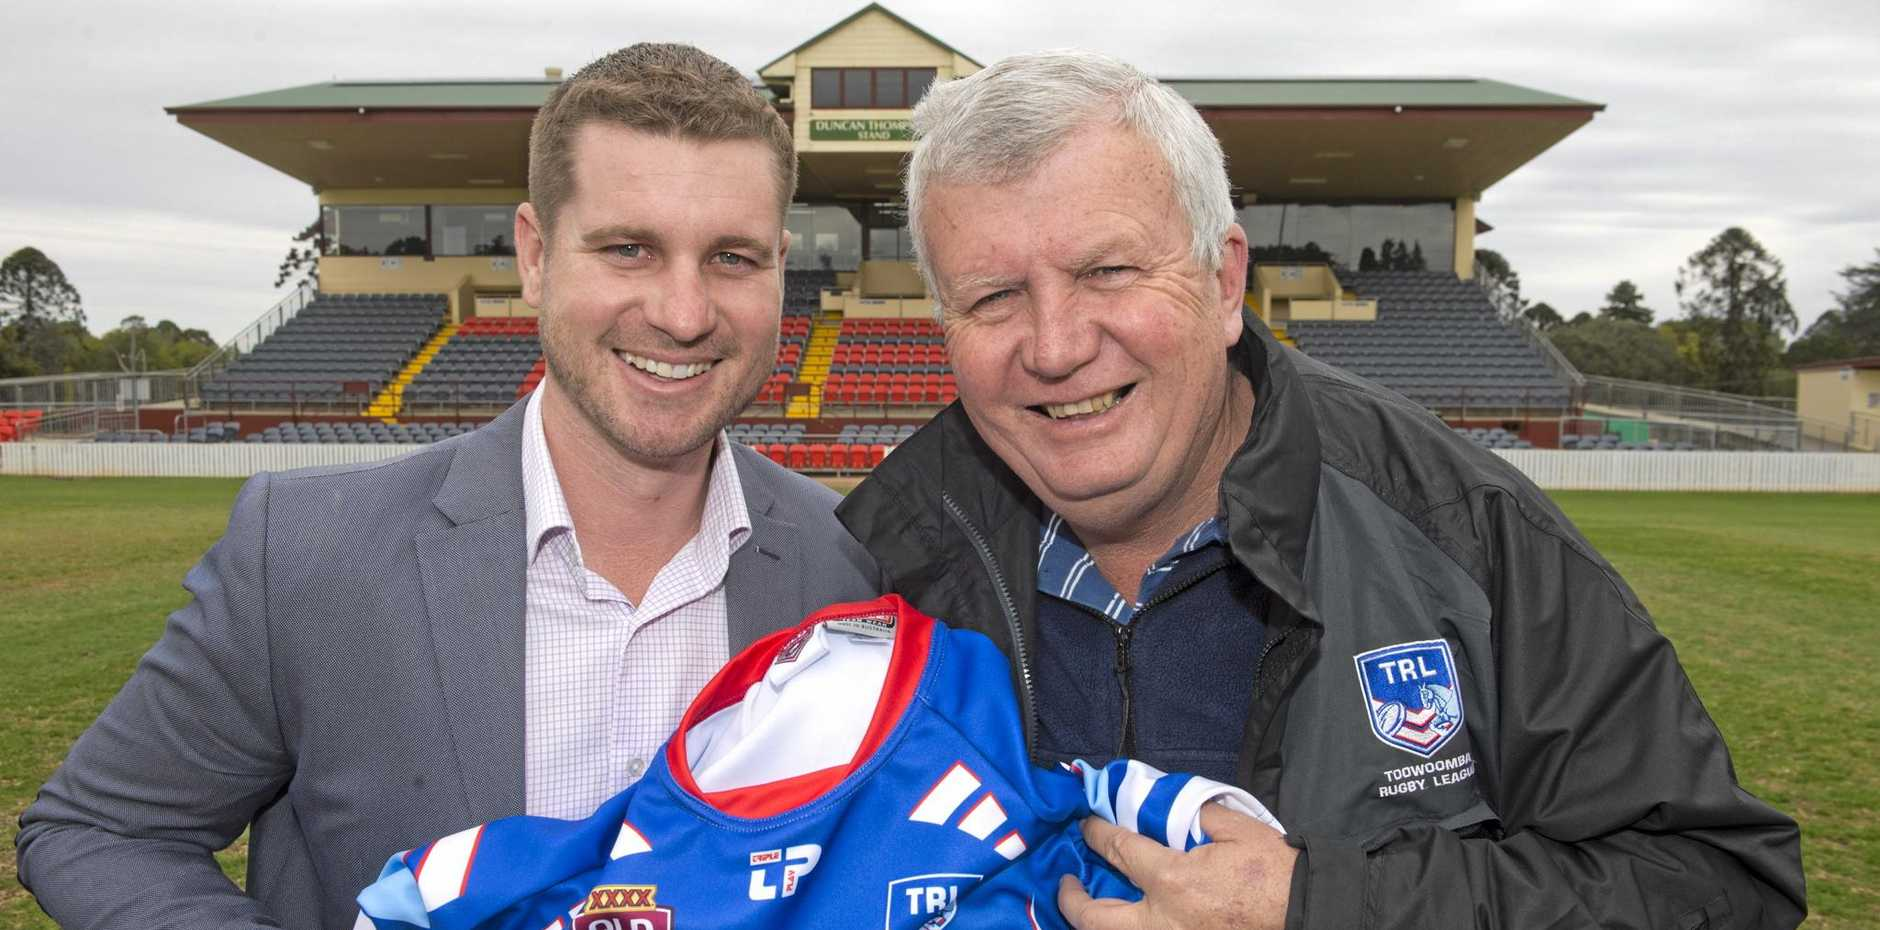 TEAMING UP: Robbie Witt and TRL chairman Brian Gilroy look forward to announcing the TRL Team of the Year.